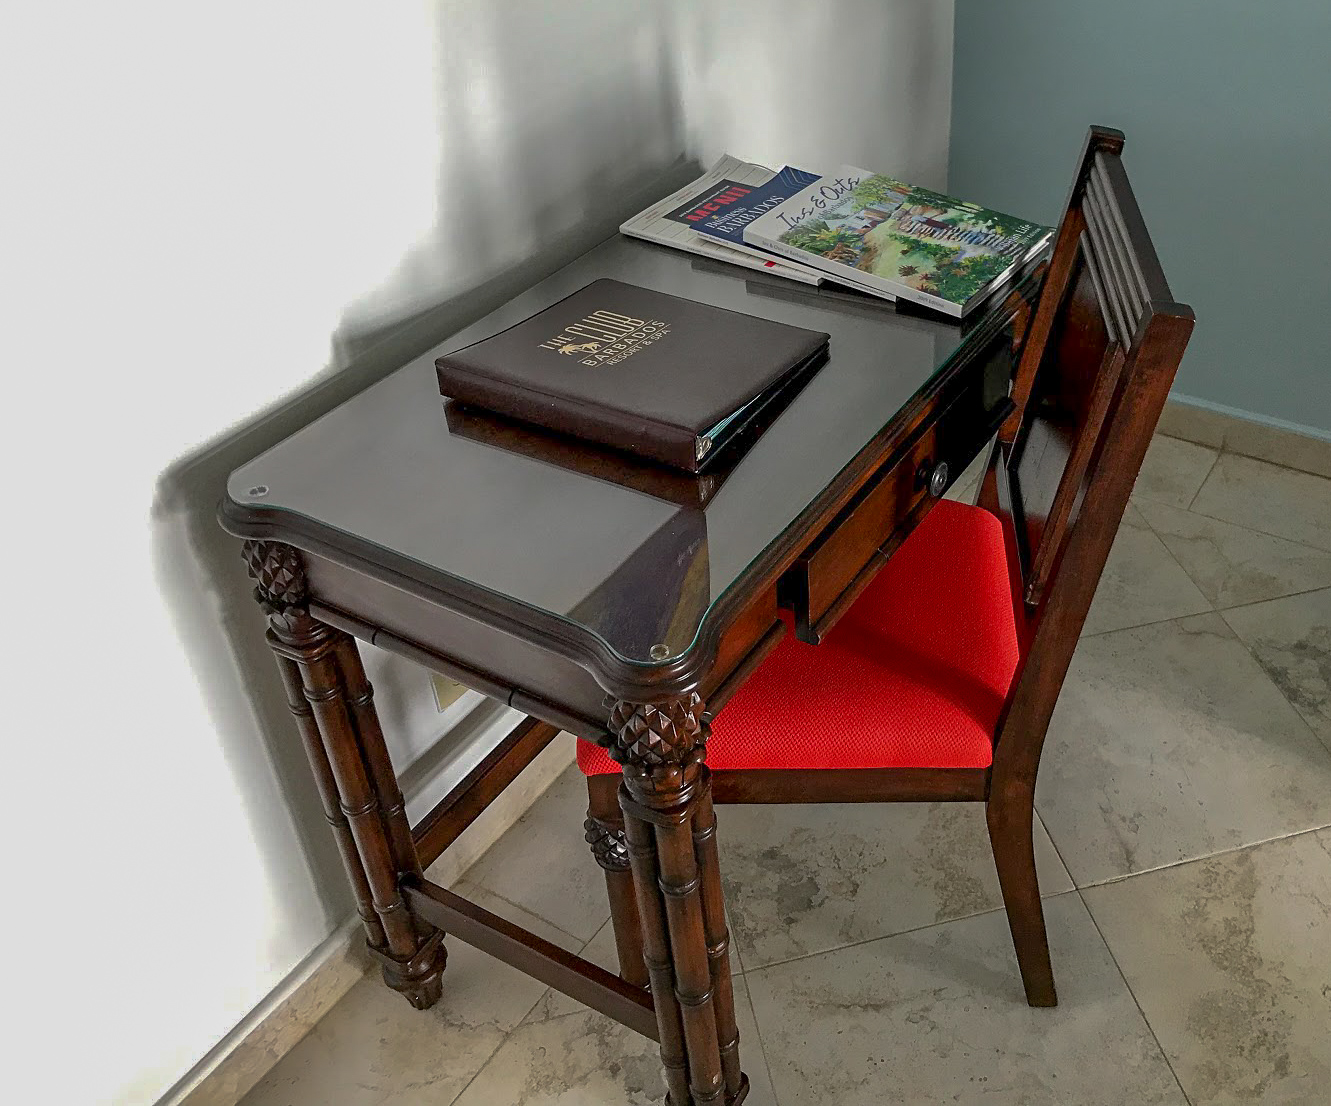 A heavy wooden desk with padded chair in front of it